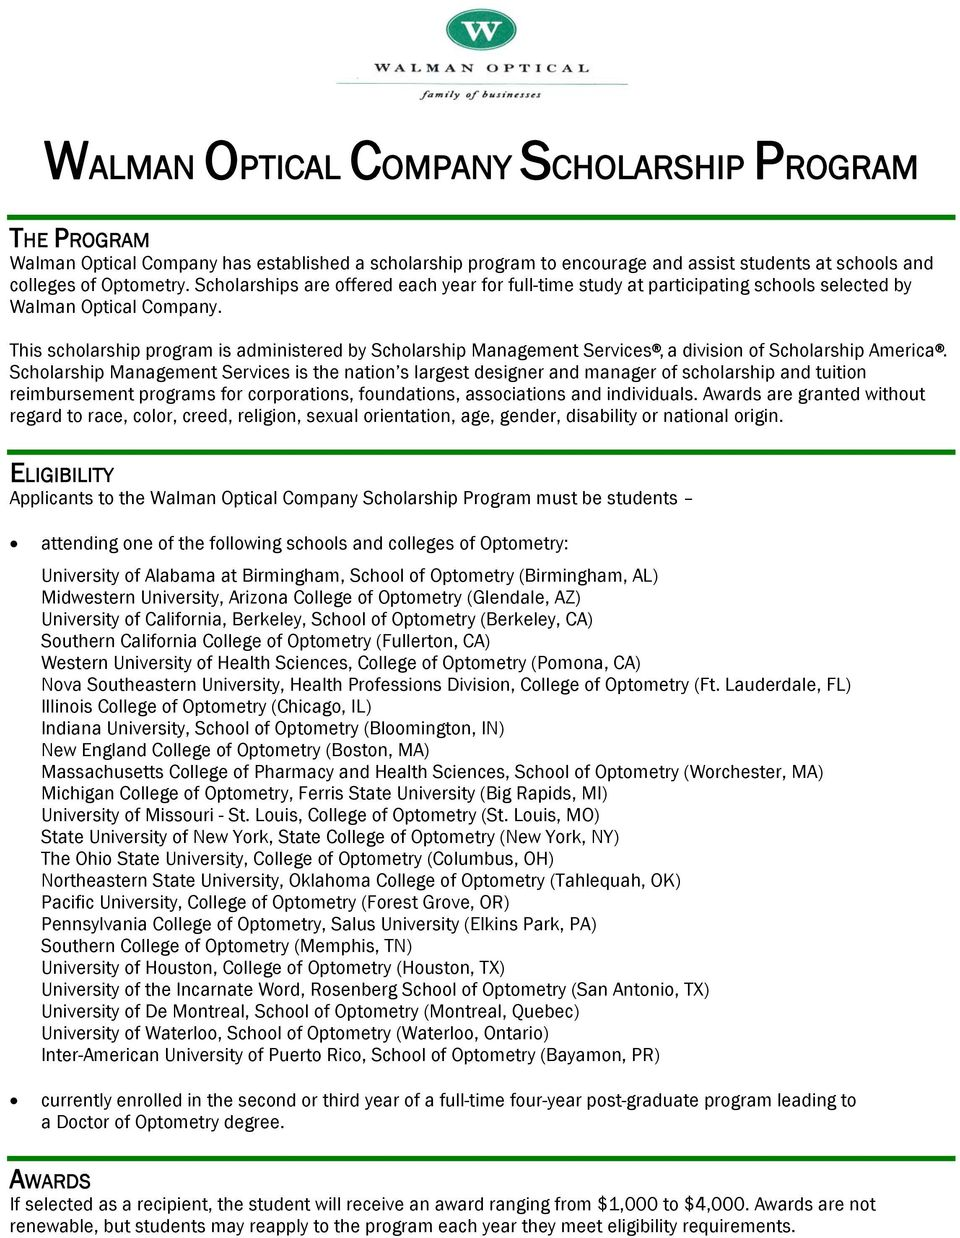 This scholarship program is administered by Scholarship Management Services, a division of Scholarship America.